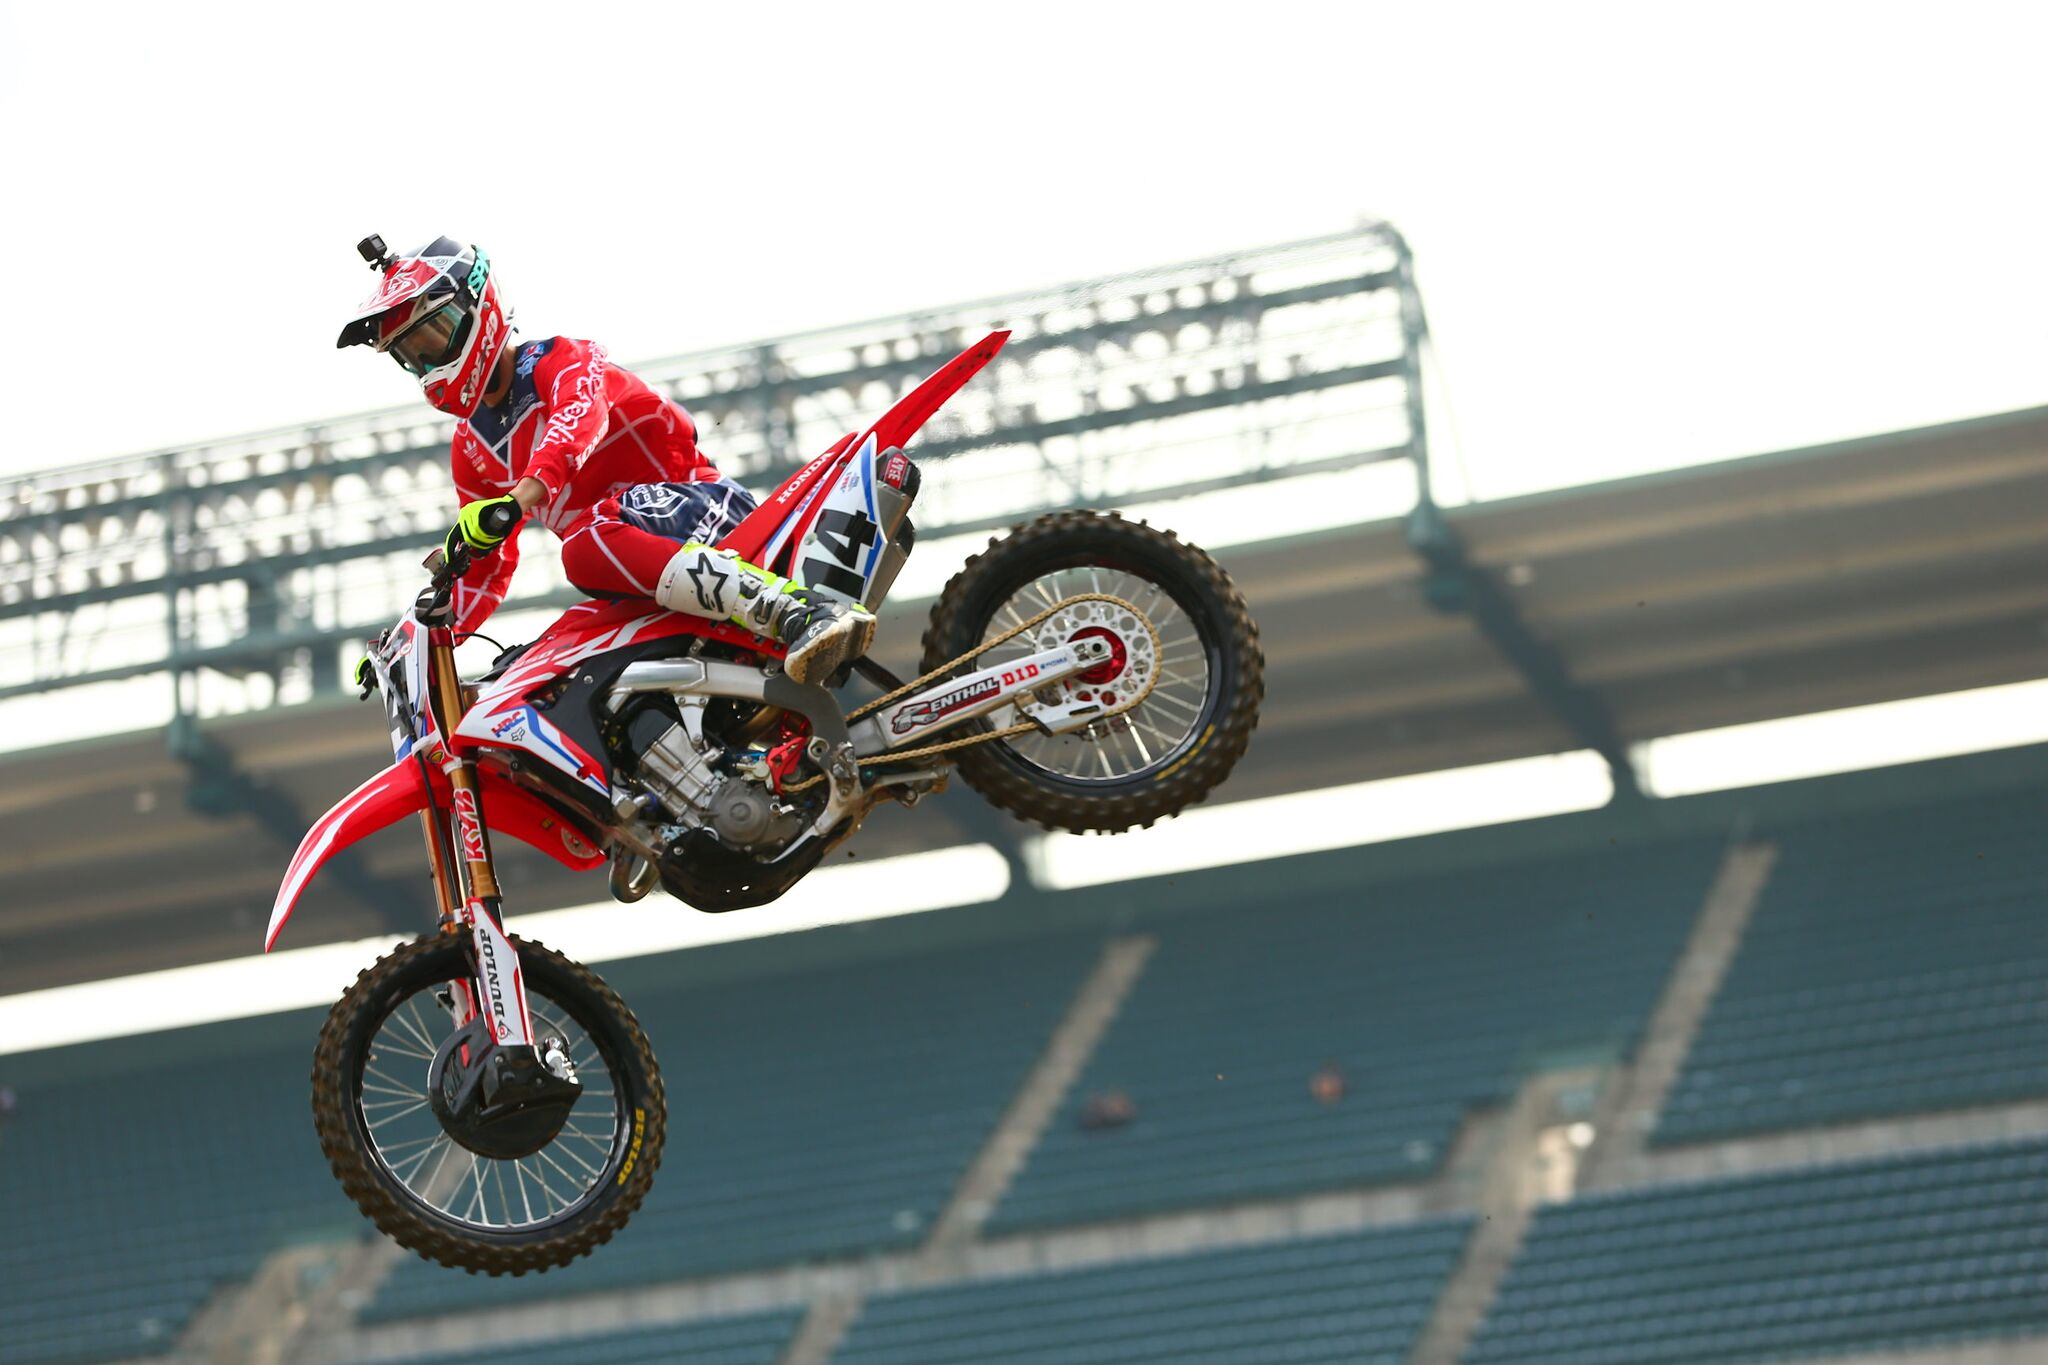 TLD's Seely Starts 2018 Supercross Campaign With Sixth at Anaheim